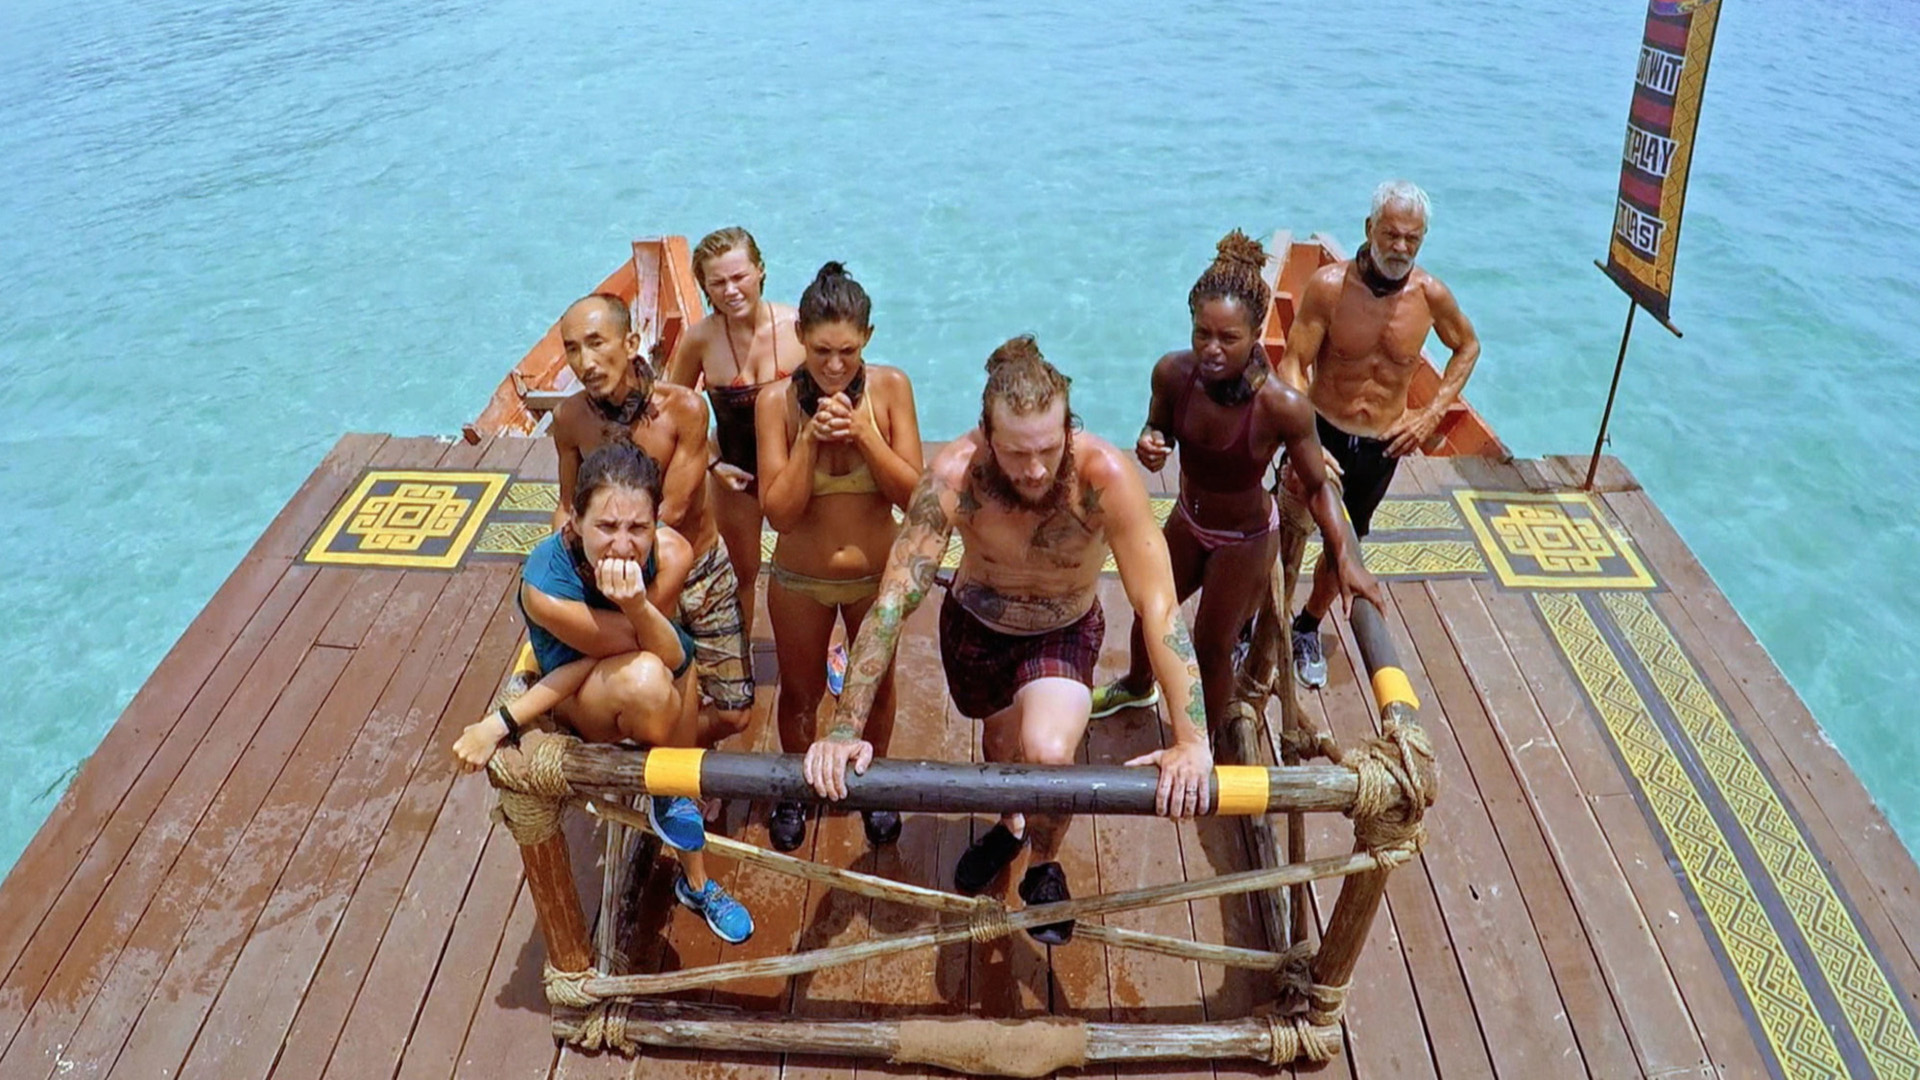 Competing for Individual Immunity has all the castaways putting on their most serious game faces.